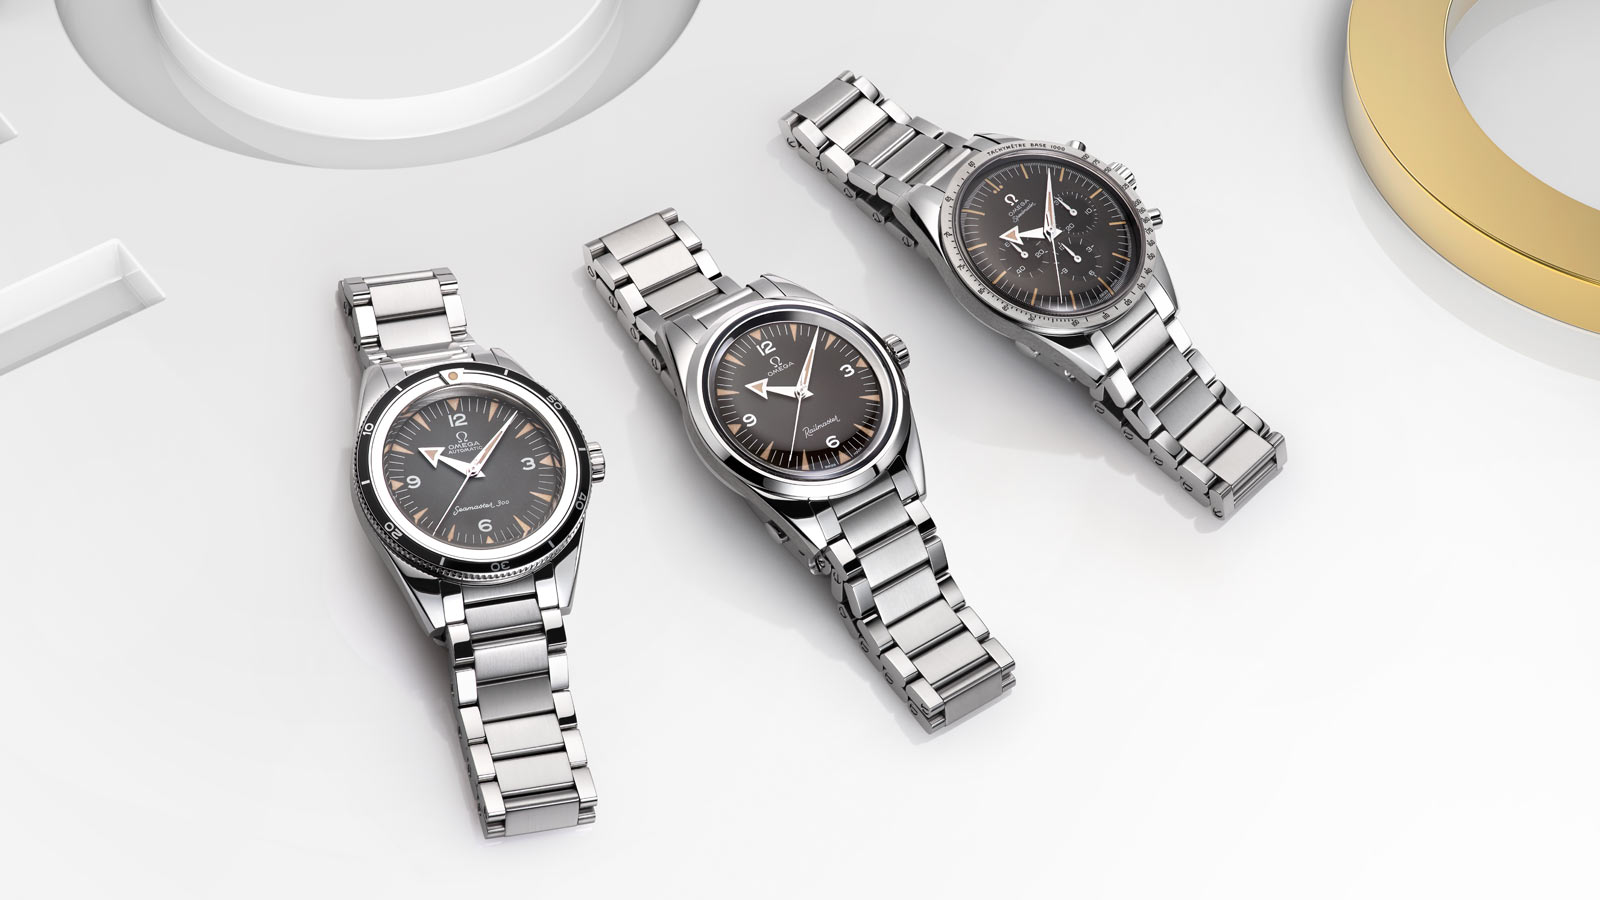 omega-1957-trilogy-limited-edition-3.jpg